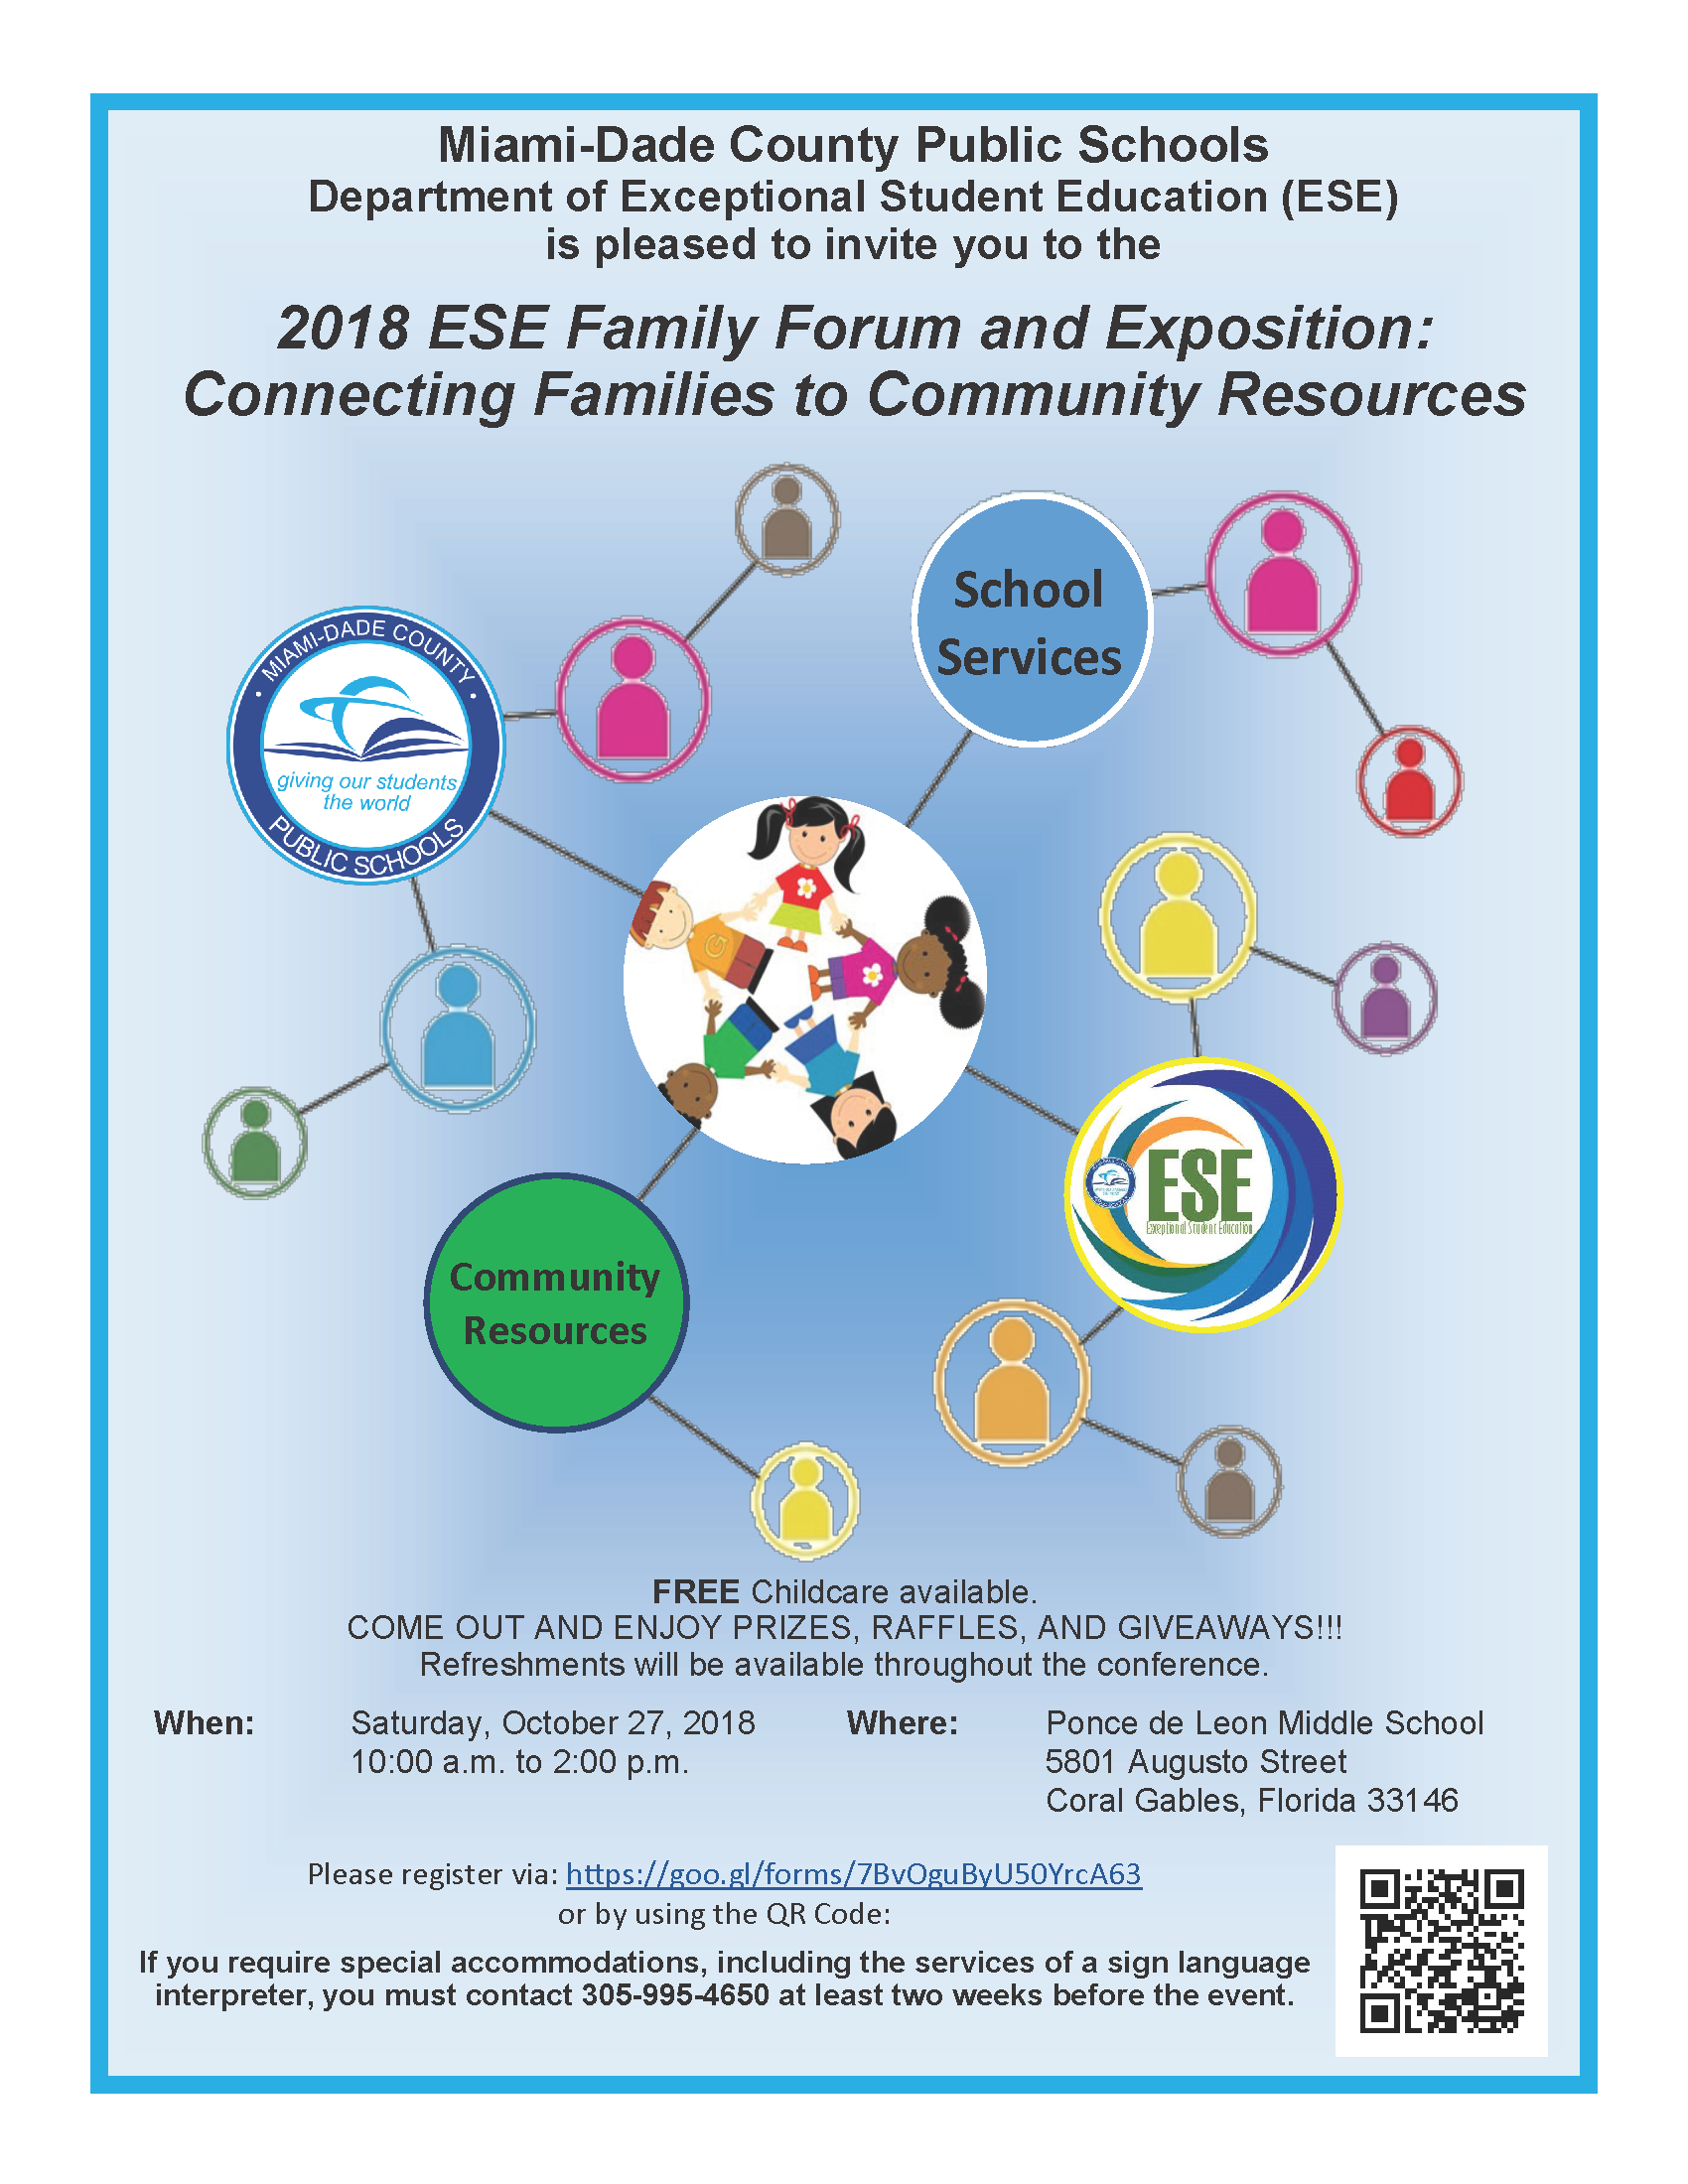 2018 Exceptional Student Education (ESE) Family Forum and Exposition @ Ponce de Leon Middle School